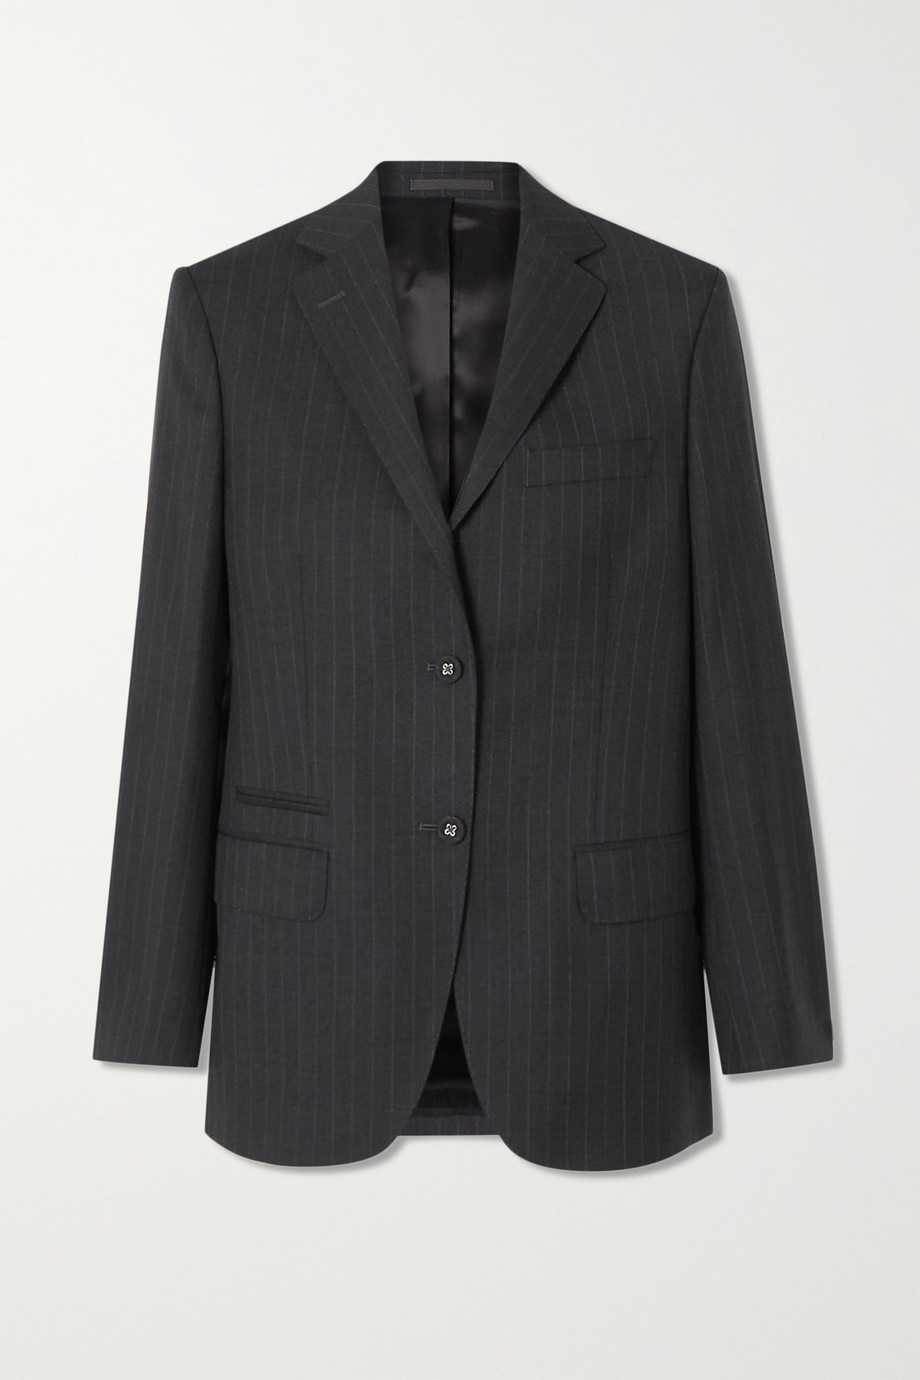 OFFICINE GÉNÉRALE Charlene pinstriped wool blazer